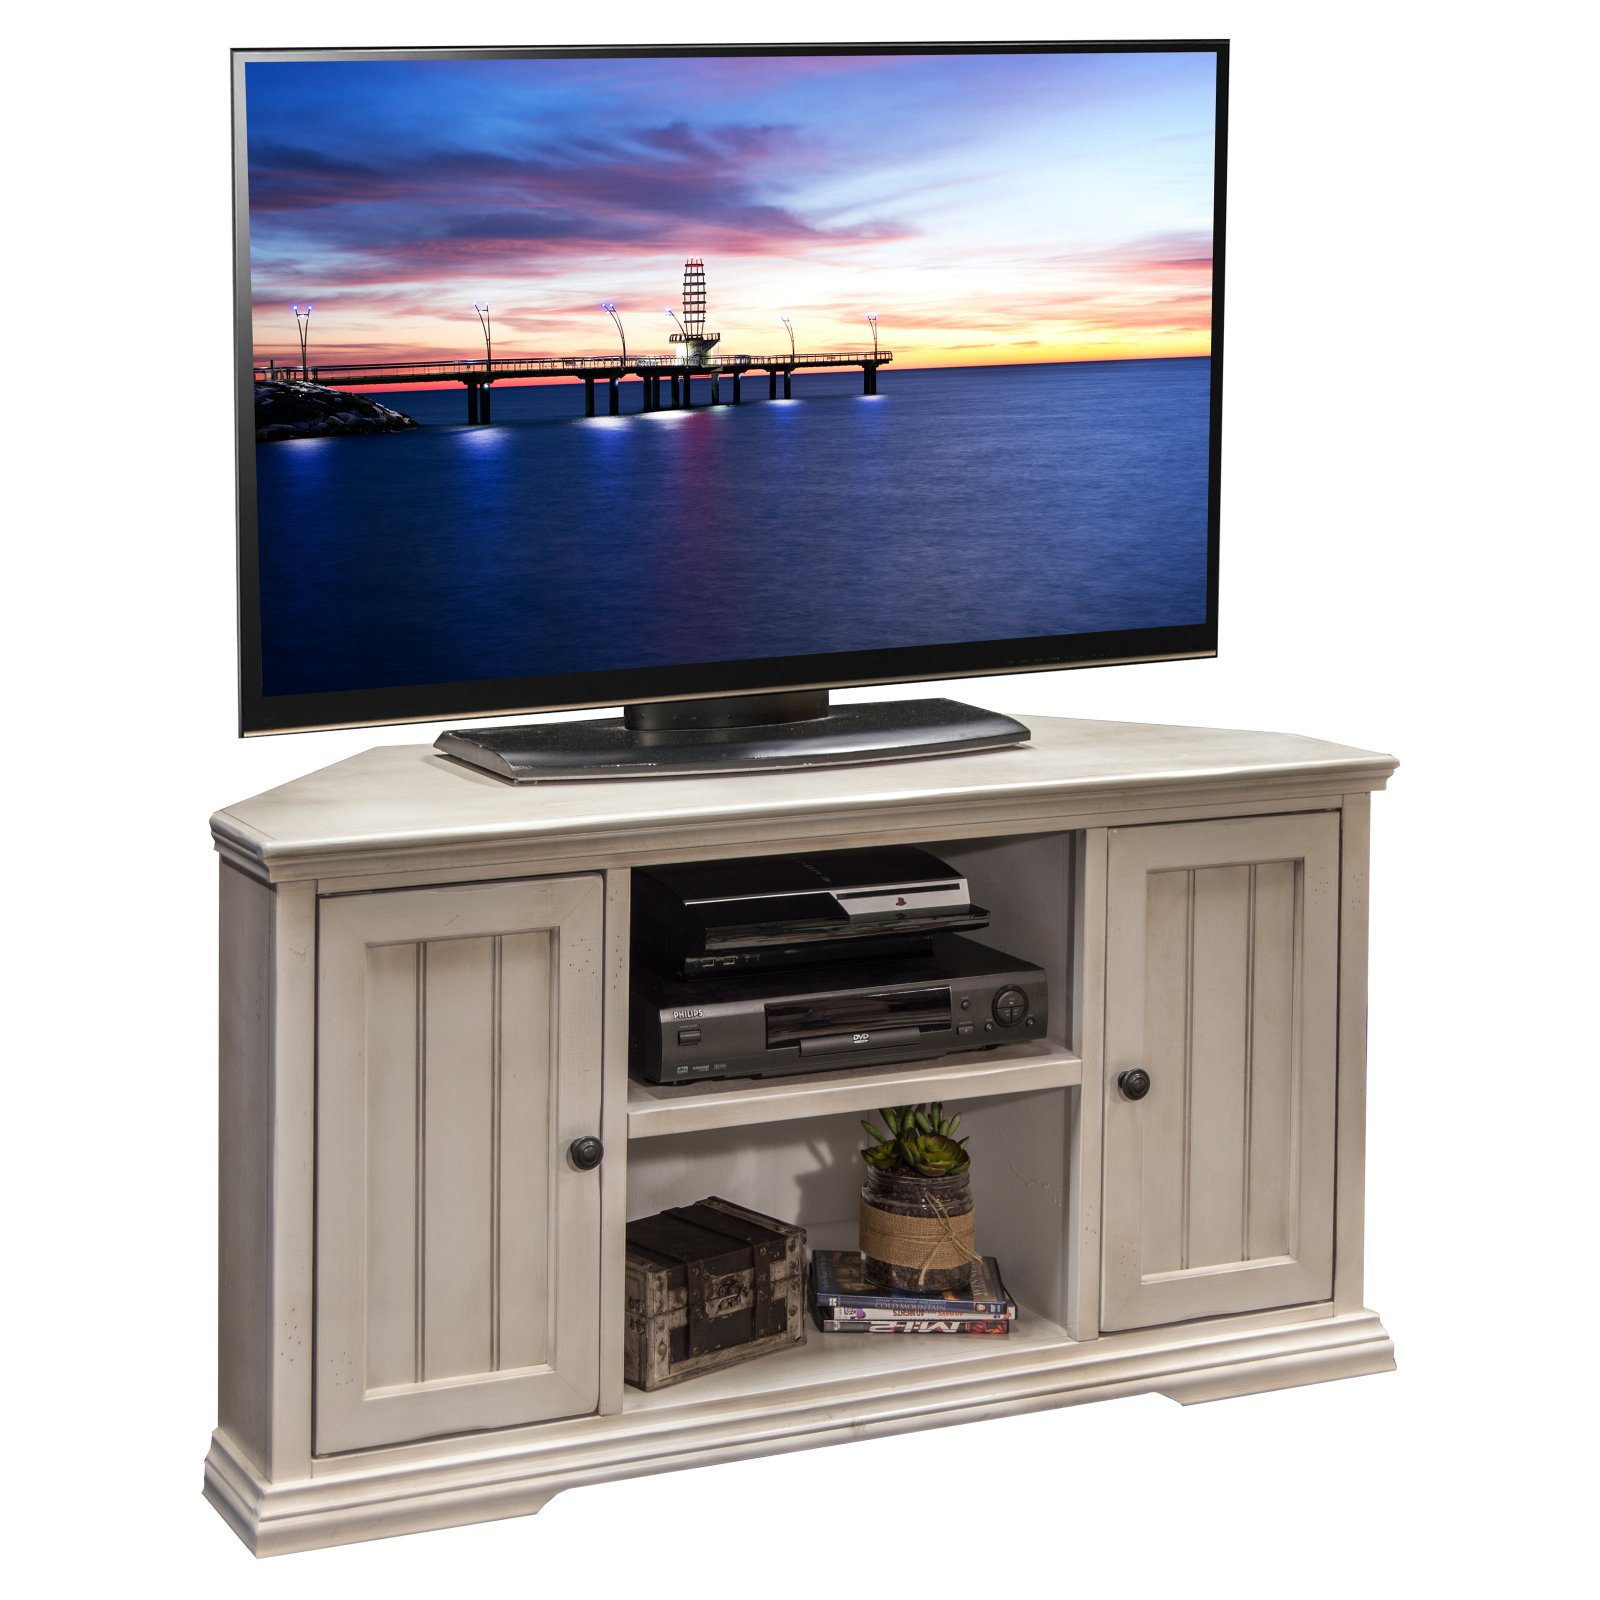 Legends Furniture Riverton 50 in TV Stand Walmartcom